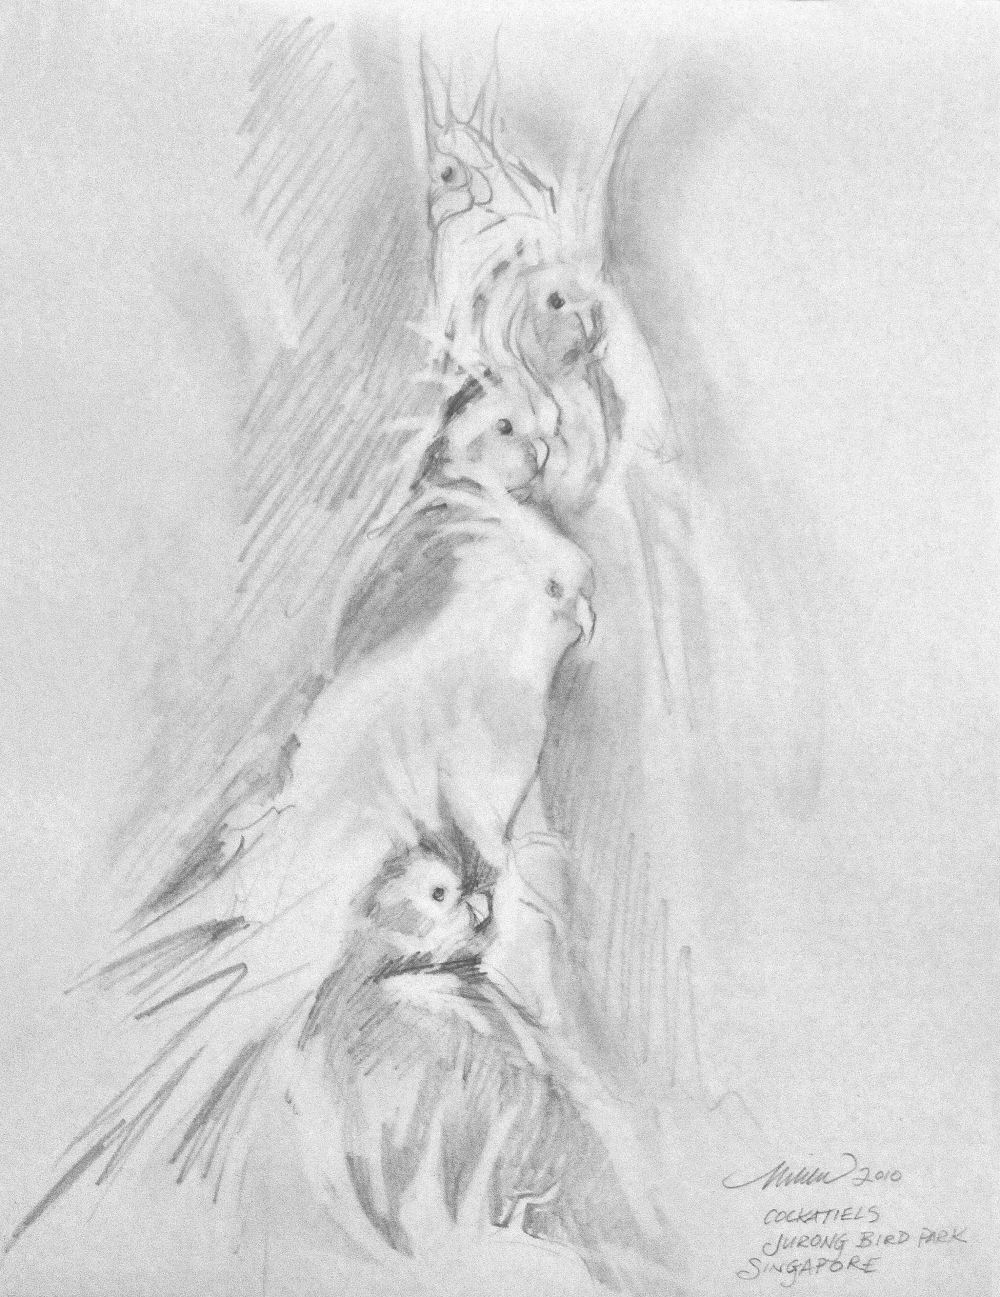 Cockatiels, Jurong Bird Park, Singapore 12H x 9W inches graphite on paper, white double mat and white 18H x 15W inches frame with crackle finish